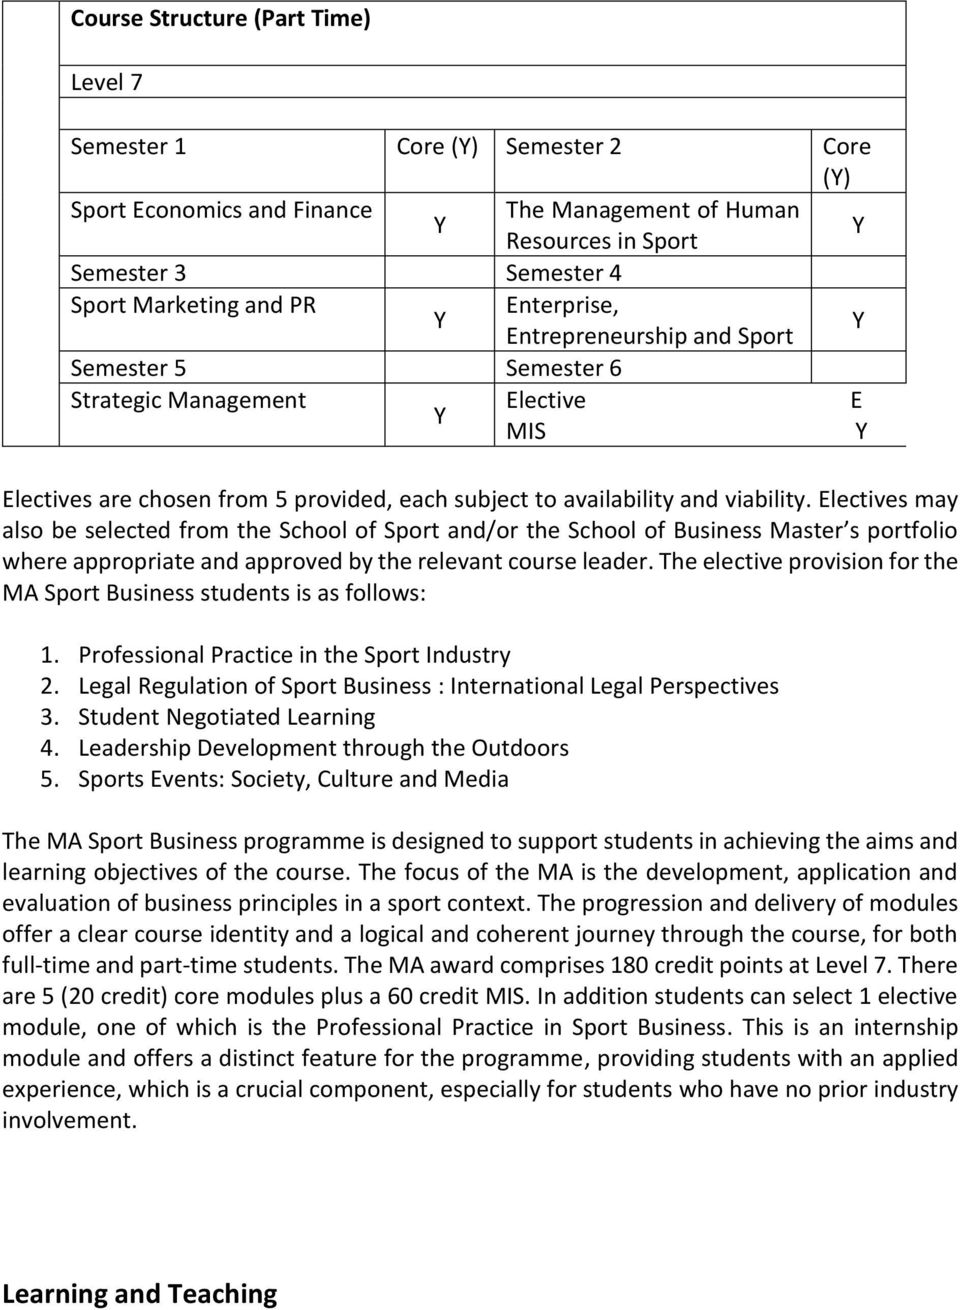 Electives may also be selected from the School of Sport and/or the School of Business Master s portfolio where appropriate and approved by the relevant course leader.